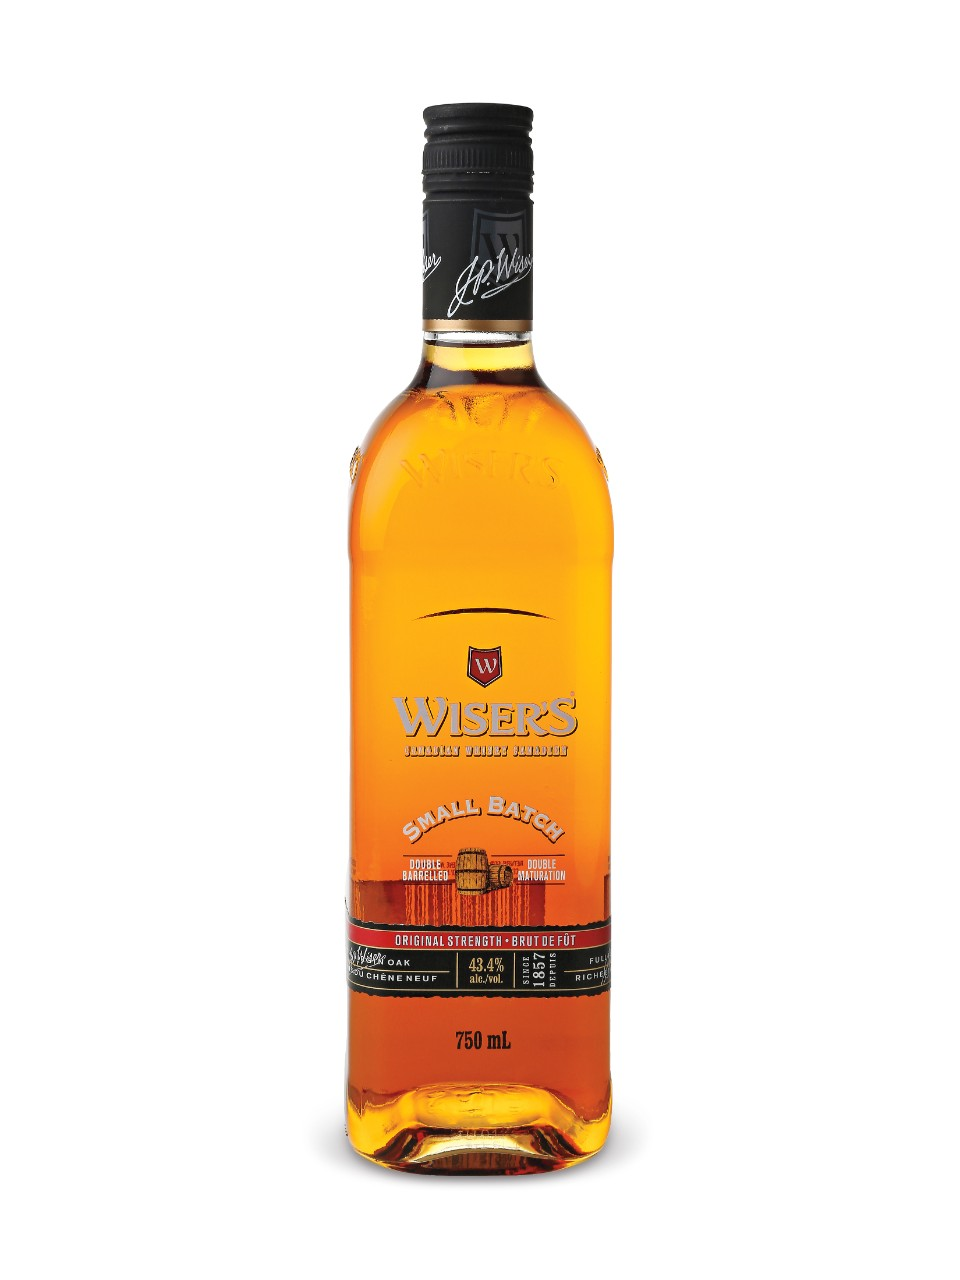 Wiser's Small Batch Whisky